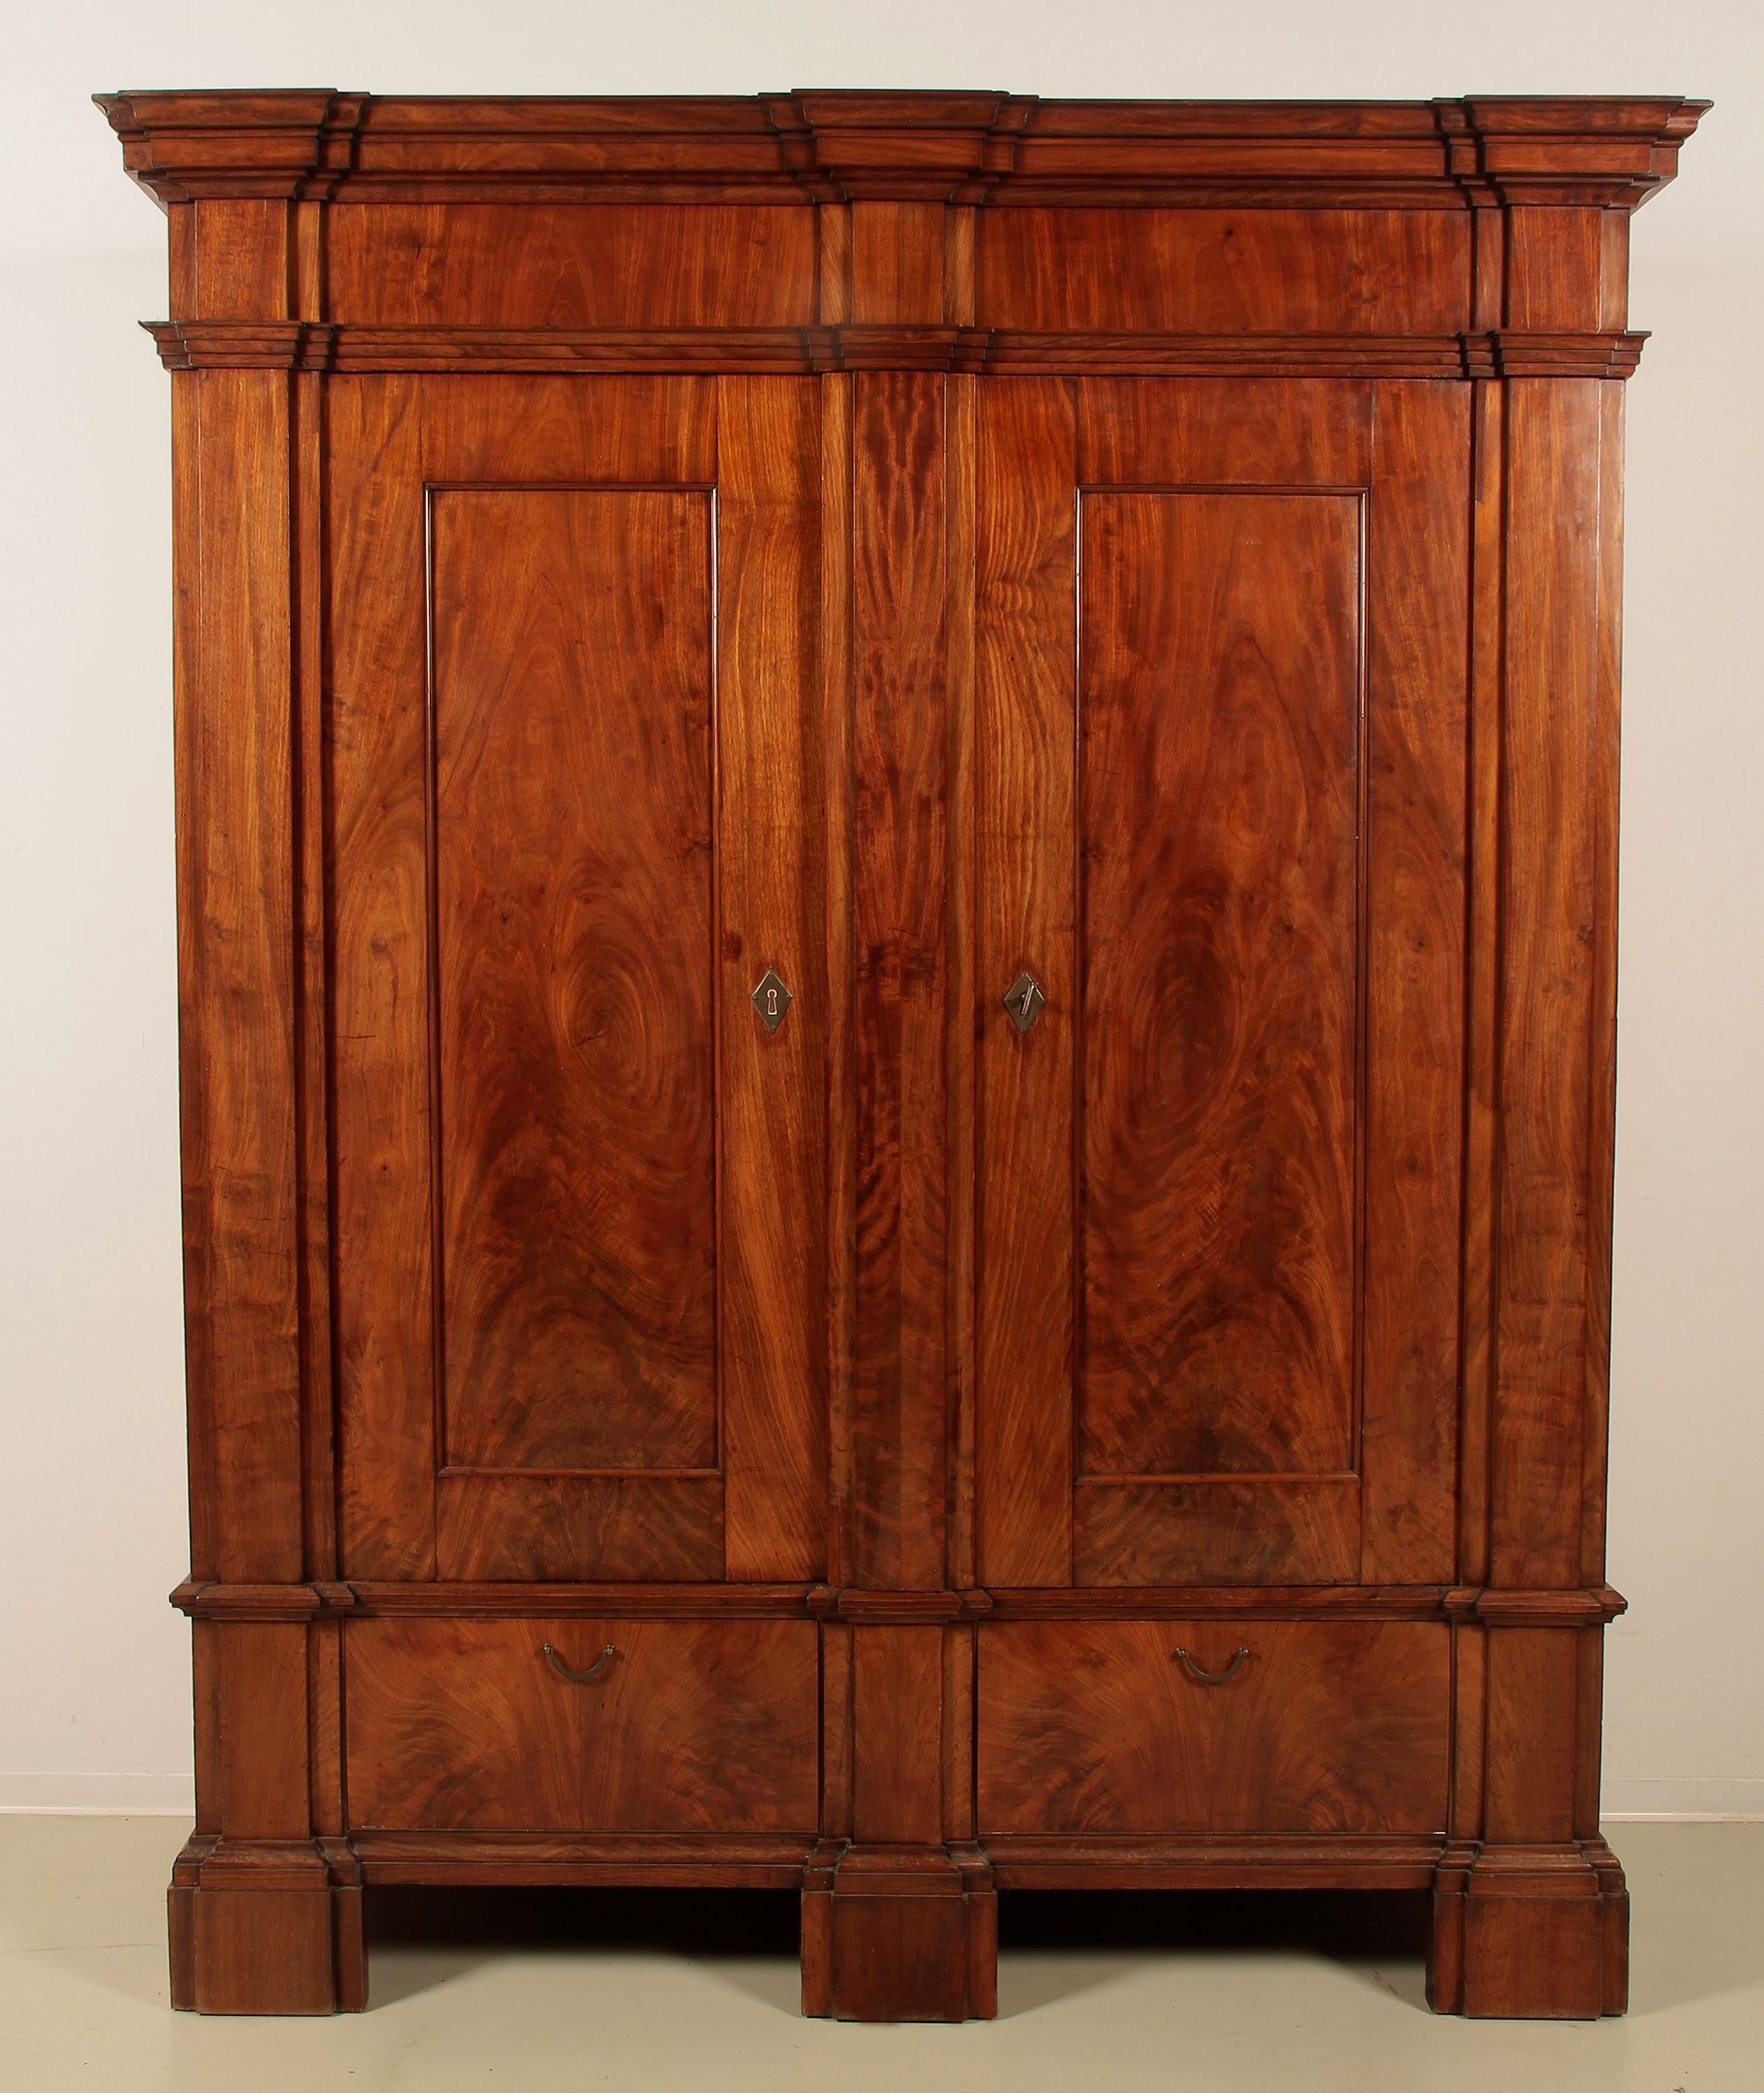 aussergew hnlicher biedermeier w scheschrank epoche biedermeier holzart mahagoni ma e h he. Black Bedroom Furniture Sets. Home Design Ideas